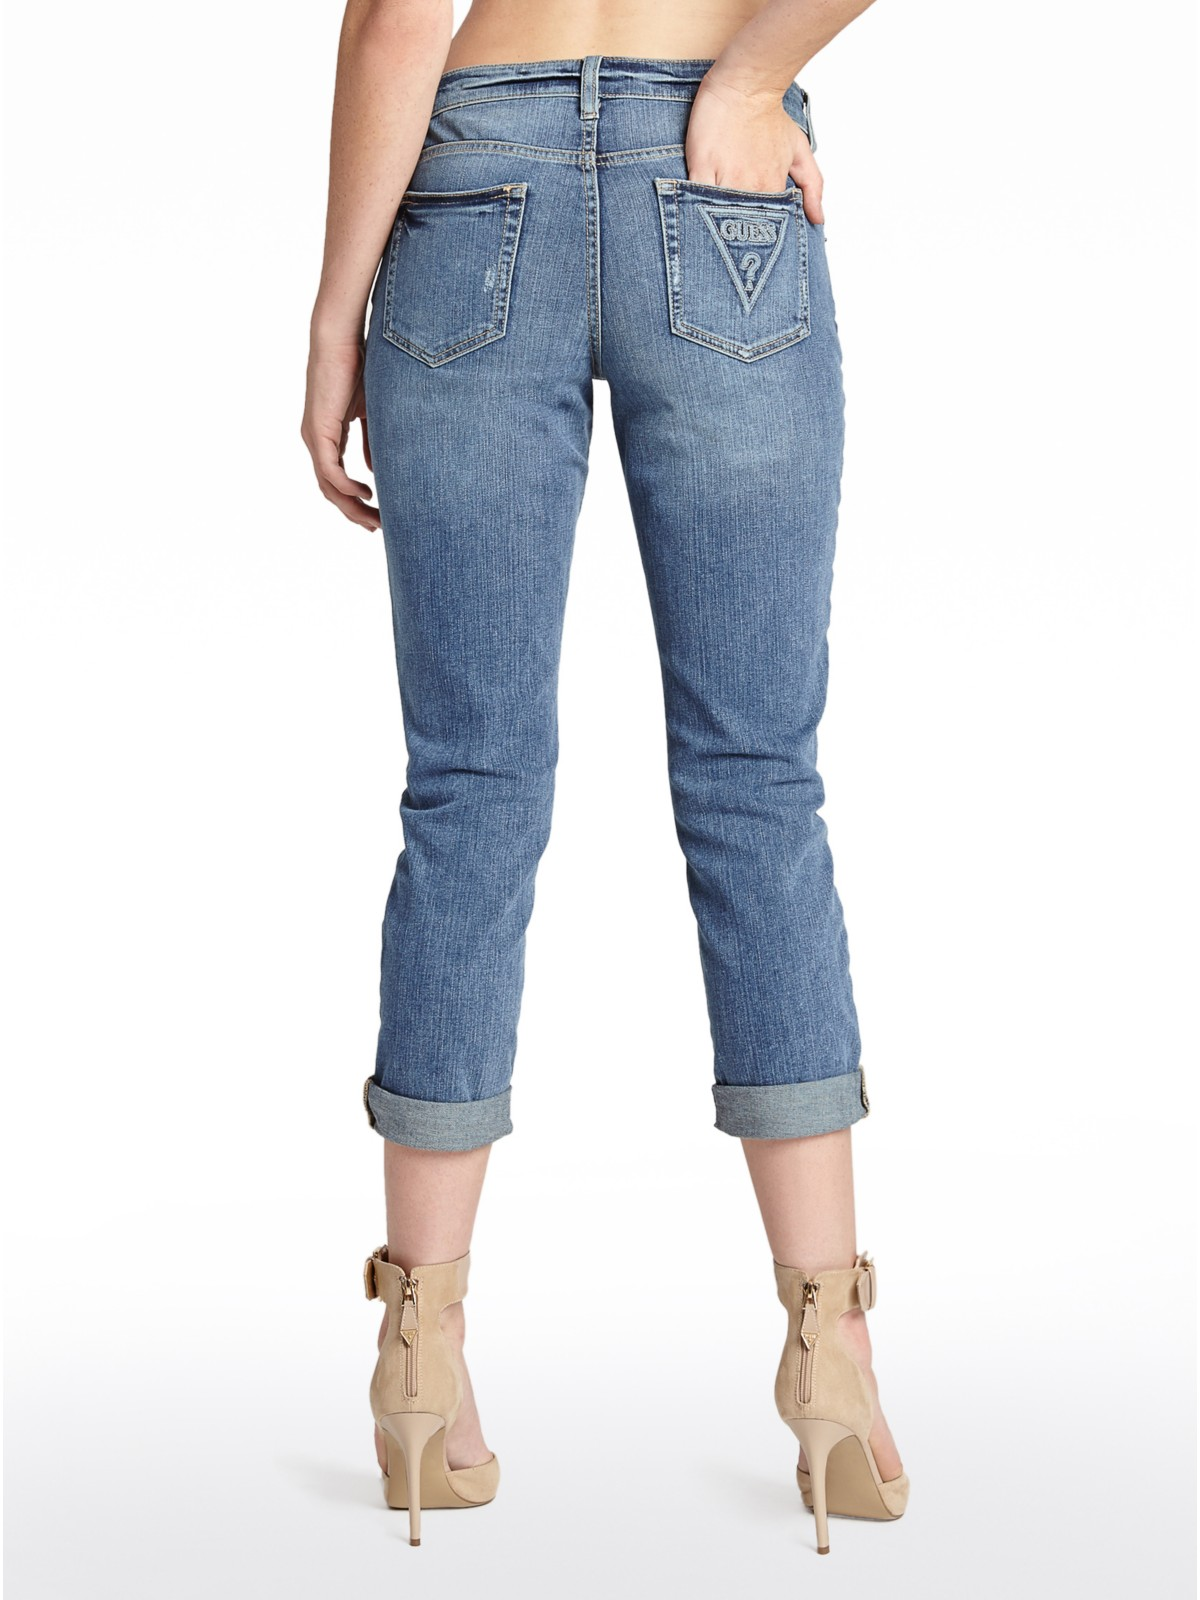 Women's Jeans If you look in any women's closet, you will find at least one pair of jeans. There are many different types of jeans on the market, like skinny jeans, straight jeans, and boyfriend jeans, so any woman can find the right pair for her body.